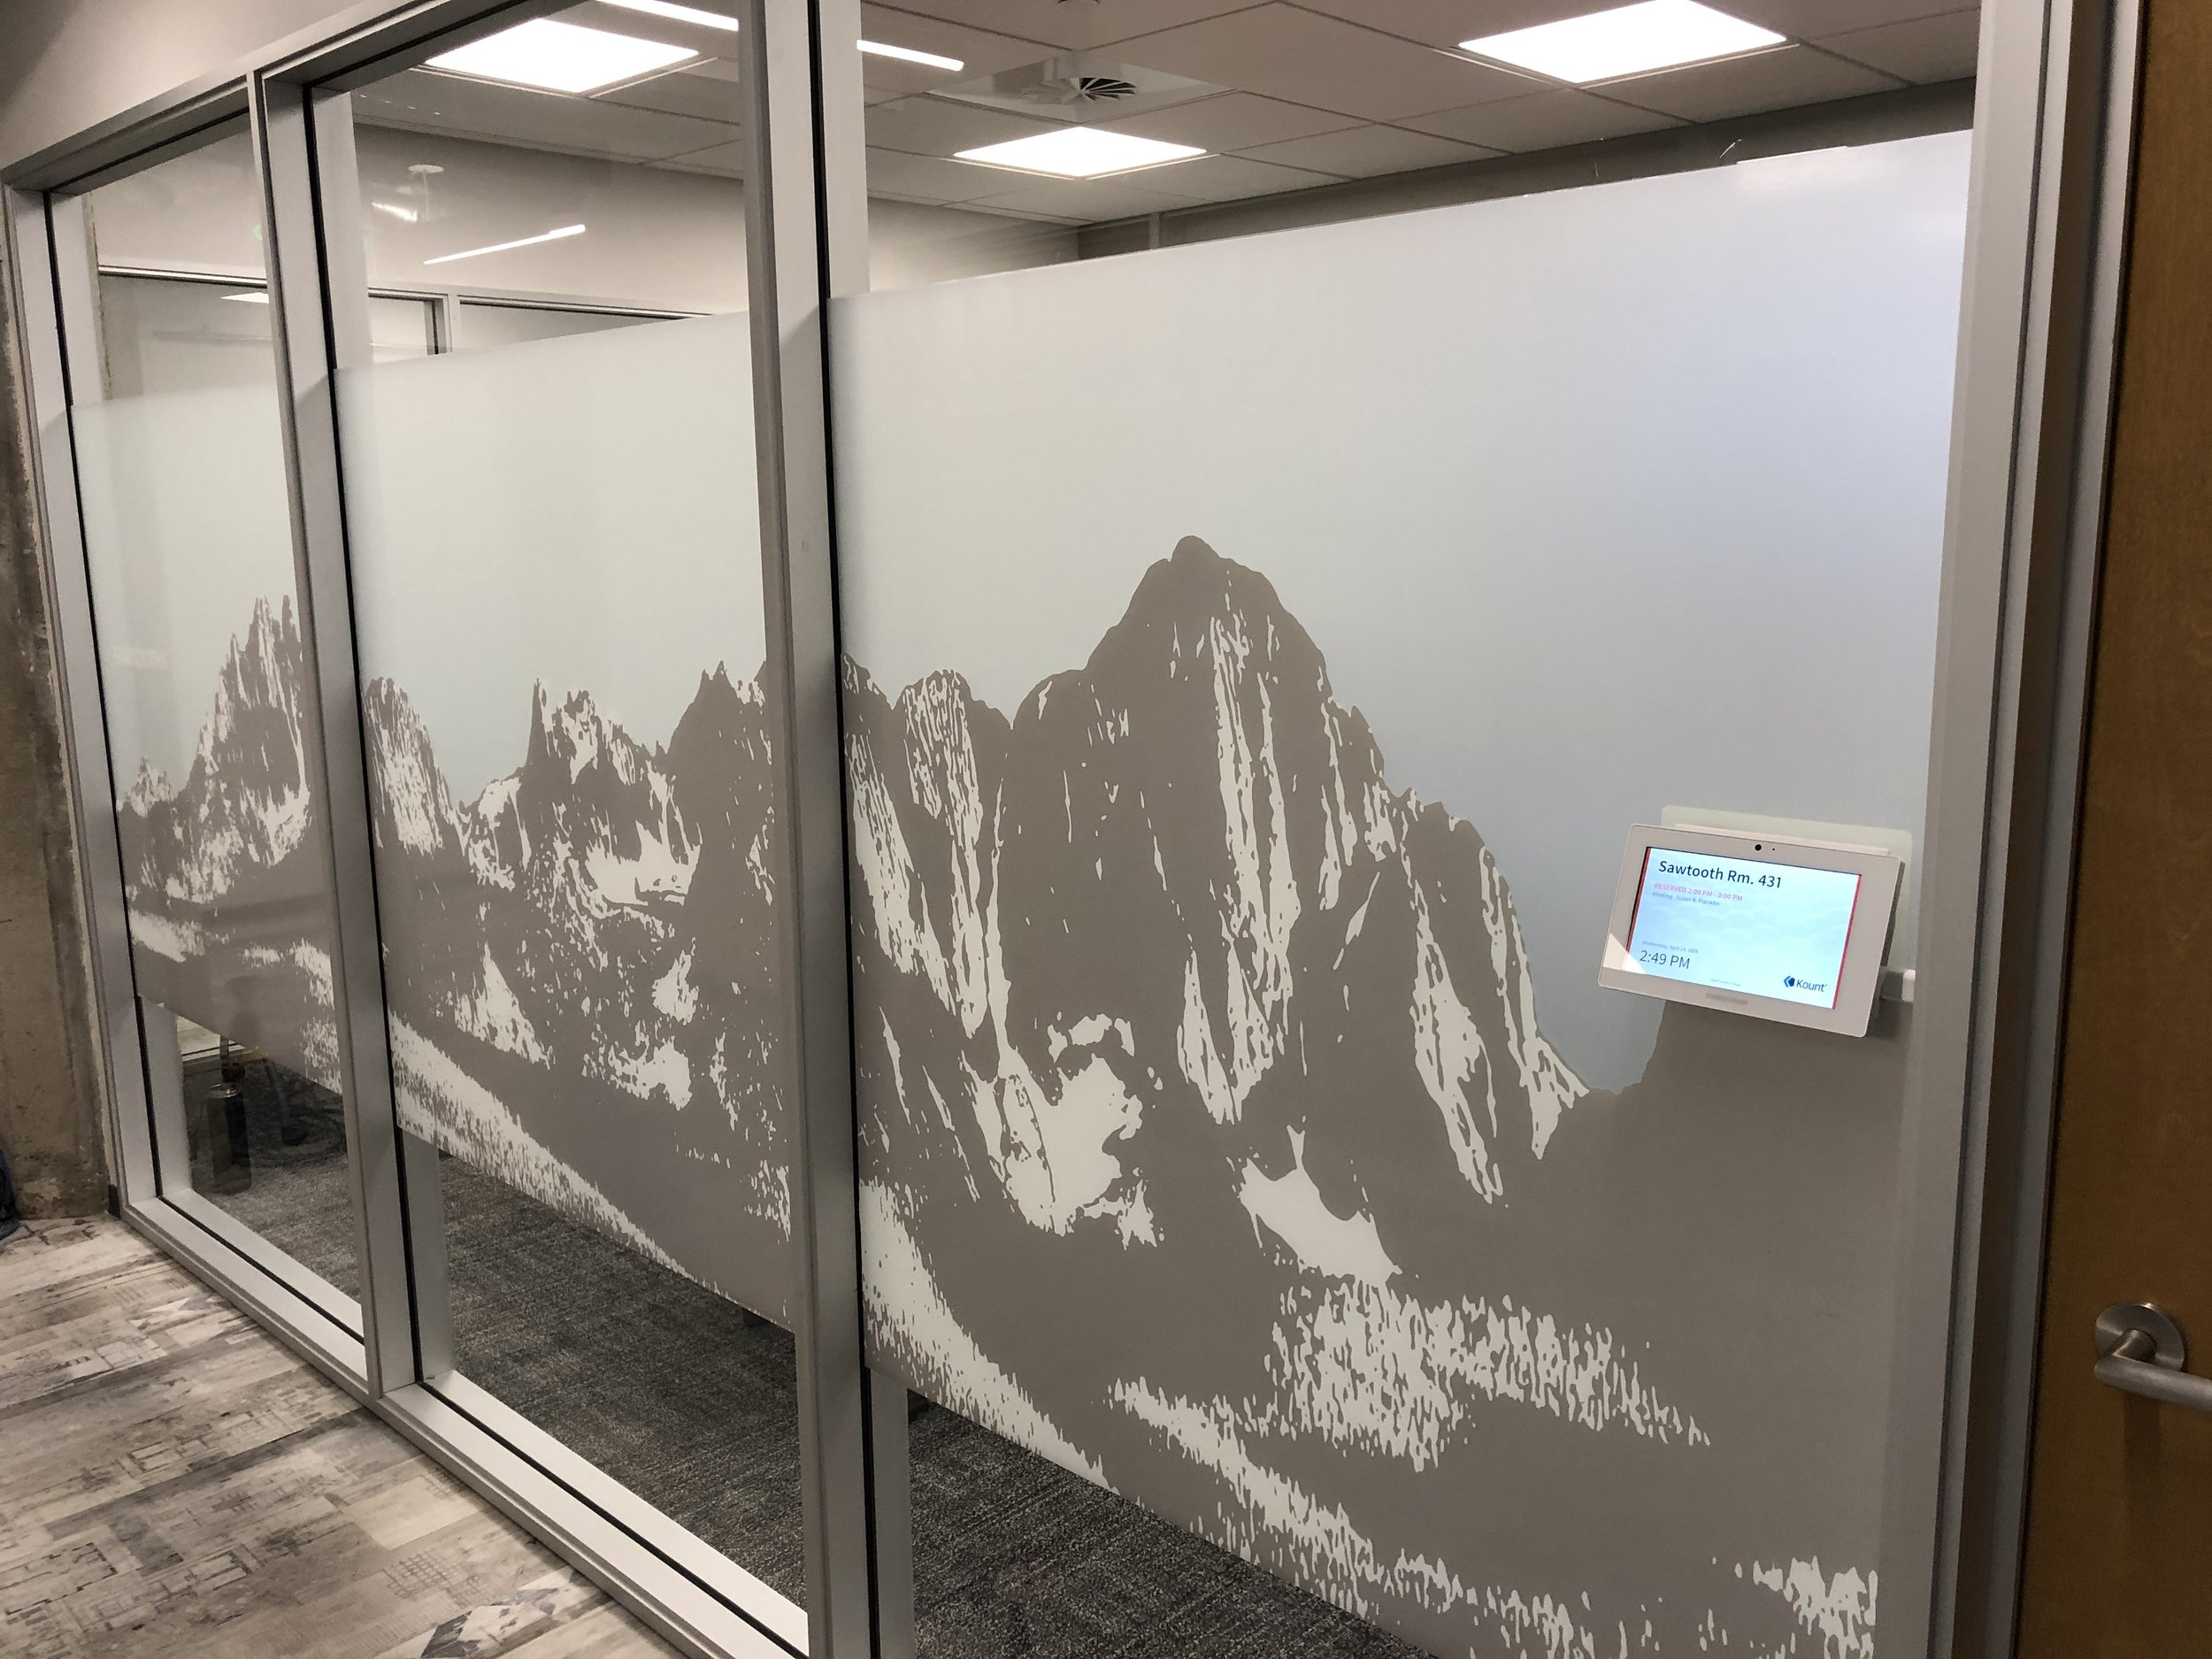 privacy window film, frosted window film, window privacy, cut to fit window privacy film, Rm wraps, stick on privacy film, Office privacy window film, Boise, Idaho, Kount, Wide format printing, Print on Demand